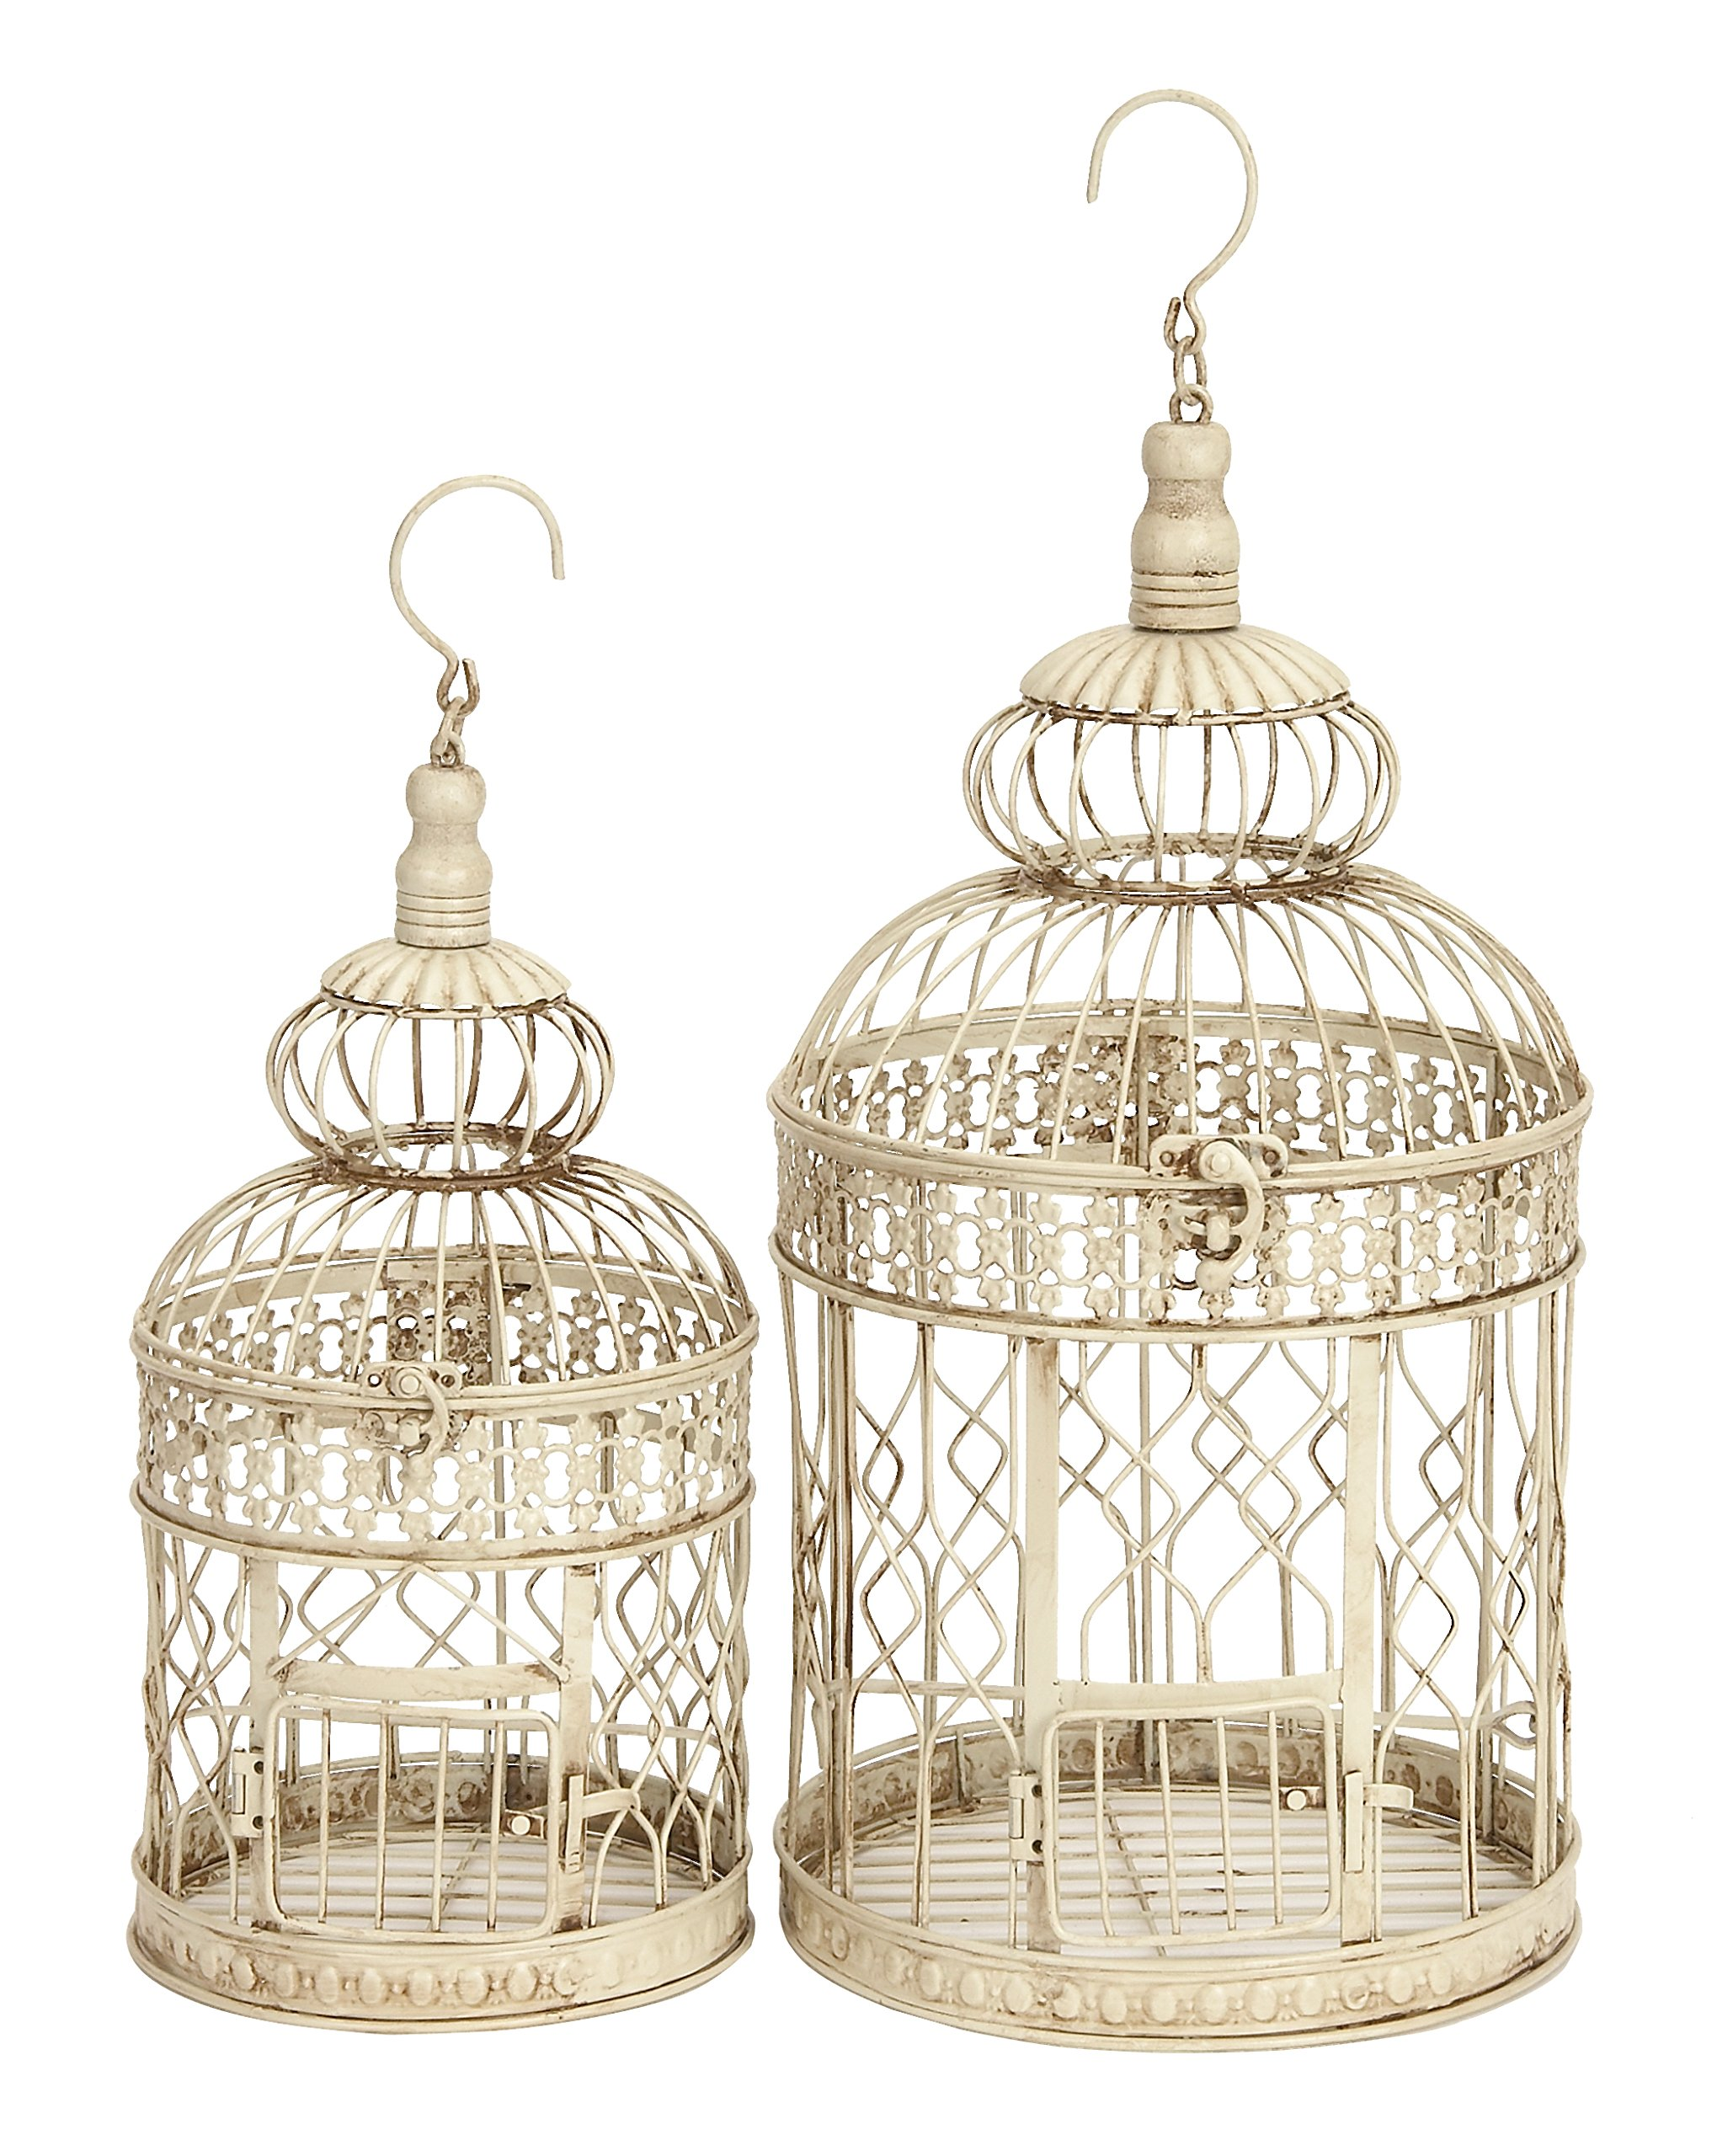 Deco 79 Metal Wall Hanging Bird Cage, 22-Inch and 18-Inch, Set of 2 by Deco 79